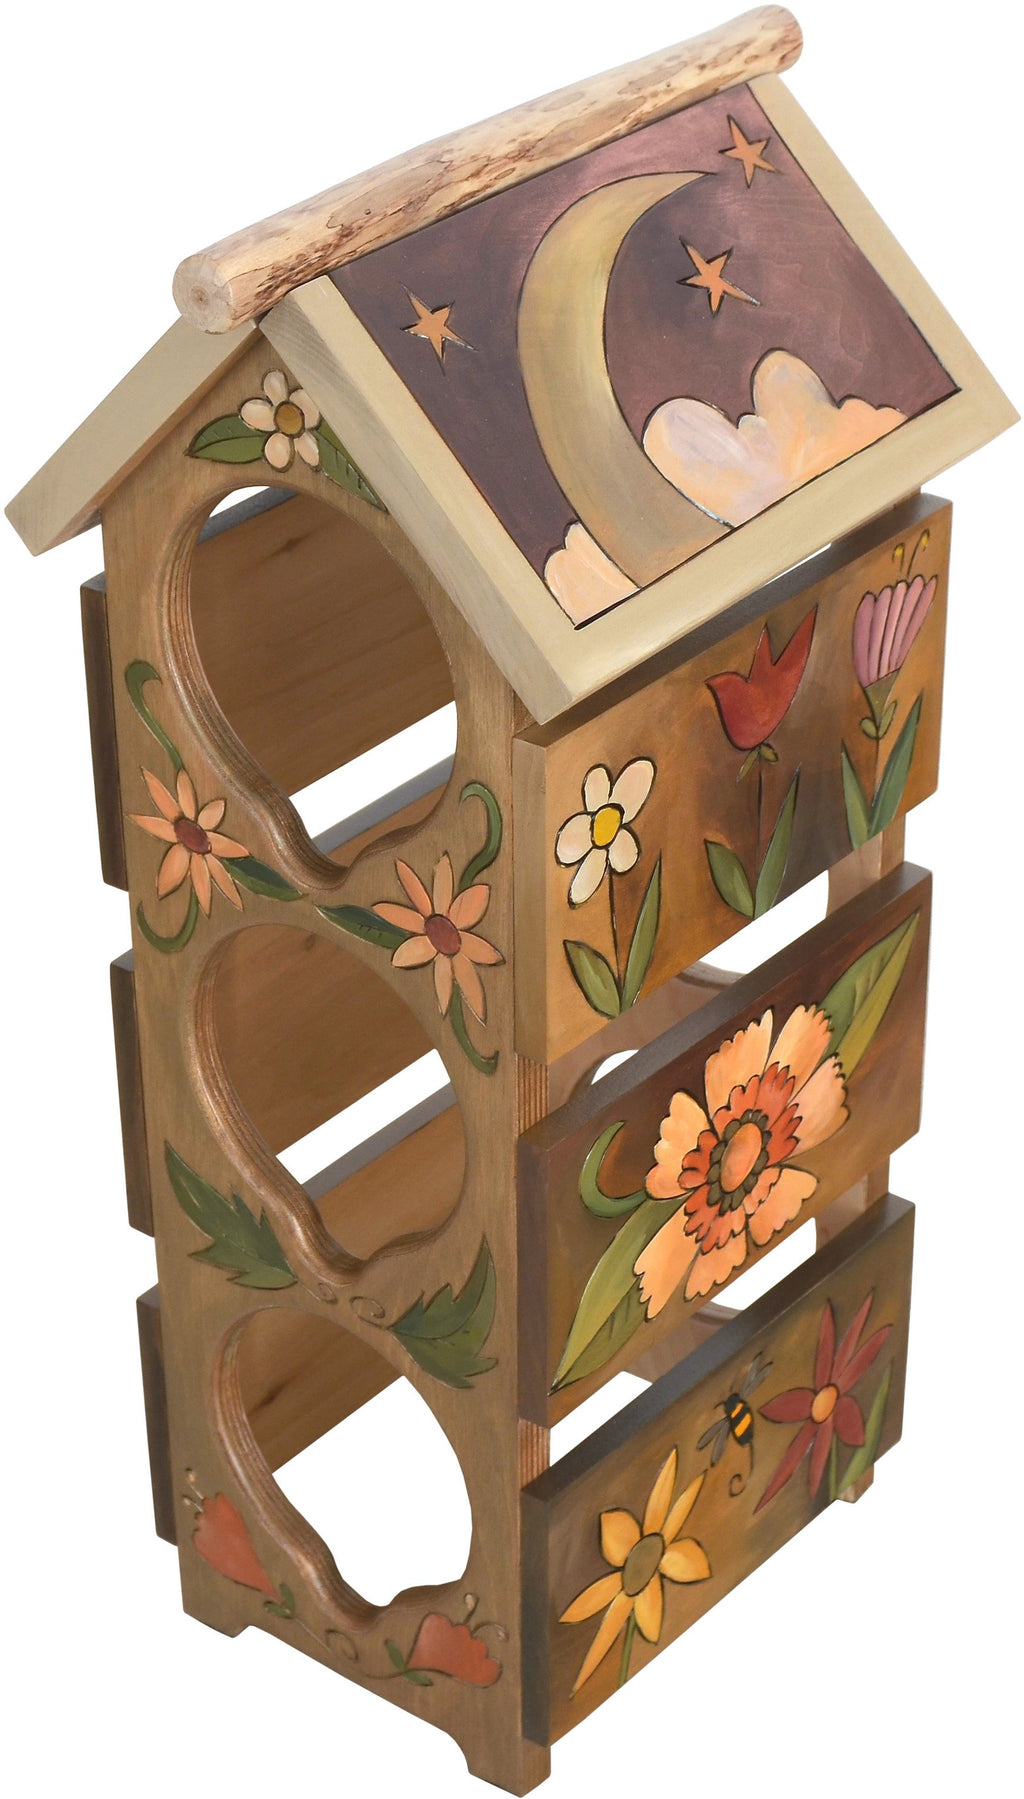 Sticks handmade wine rack with sun and moon and floral motif